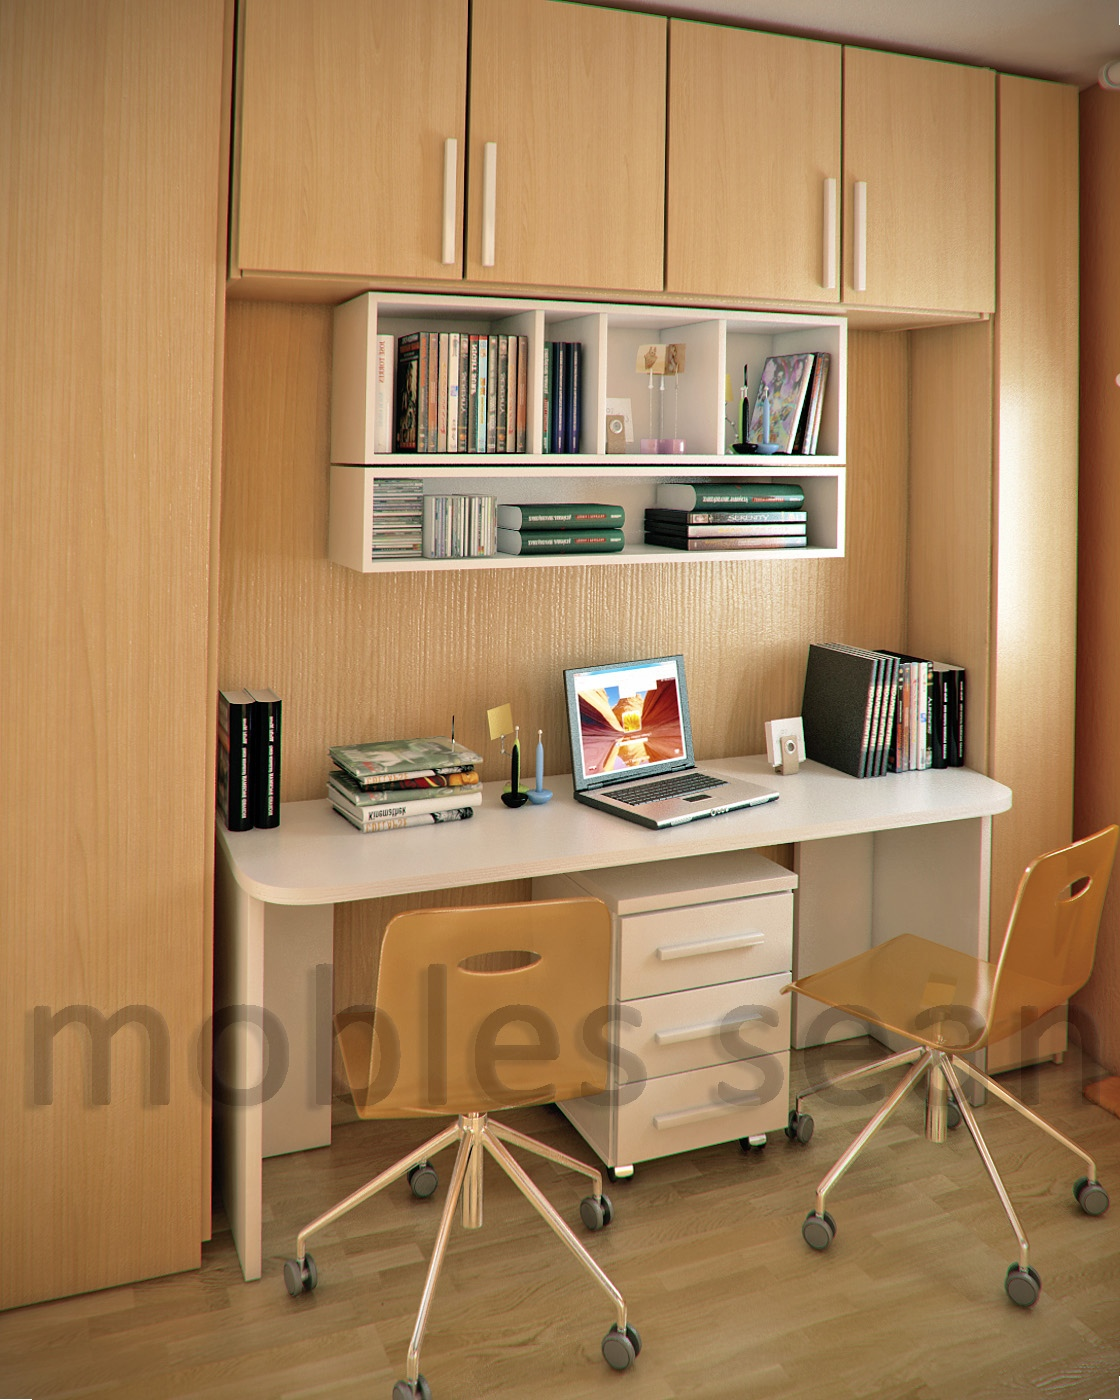 Small Study Room At Home Interior Design Ideas